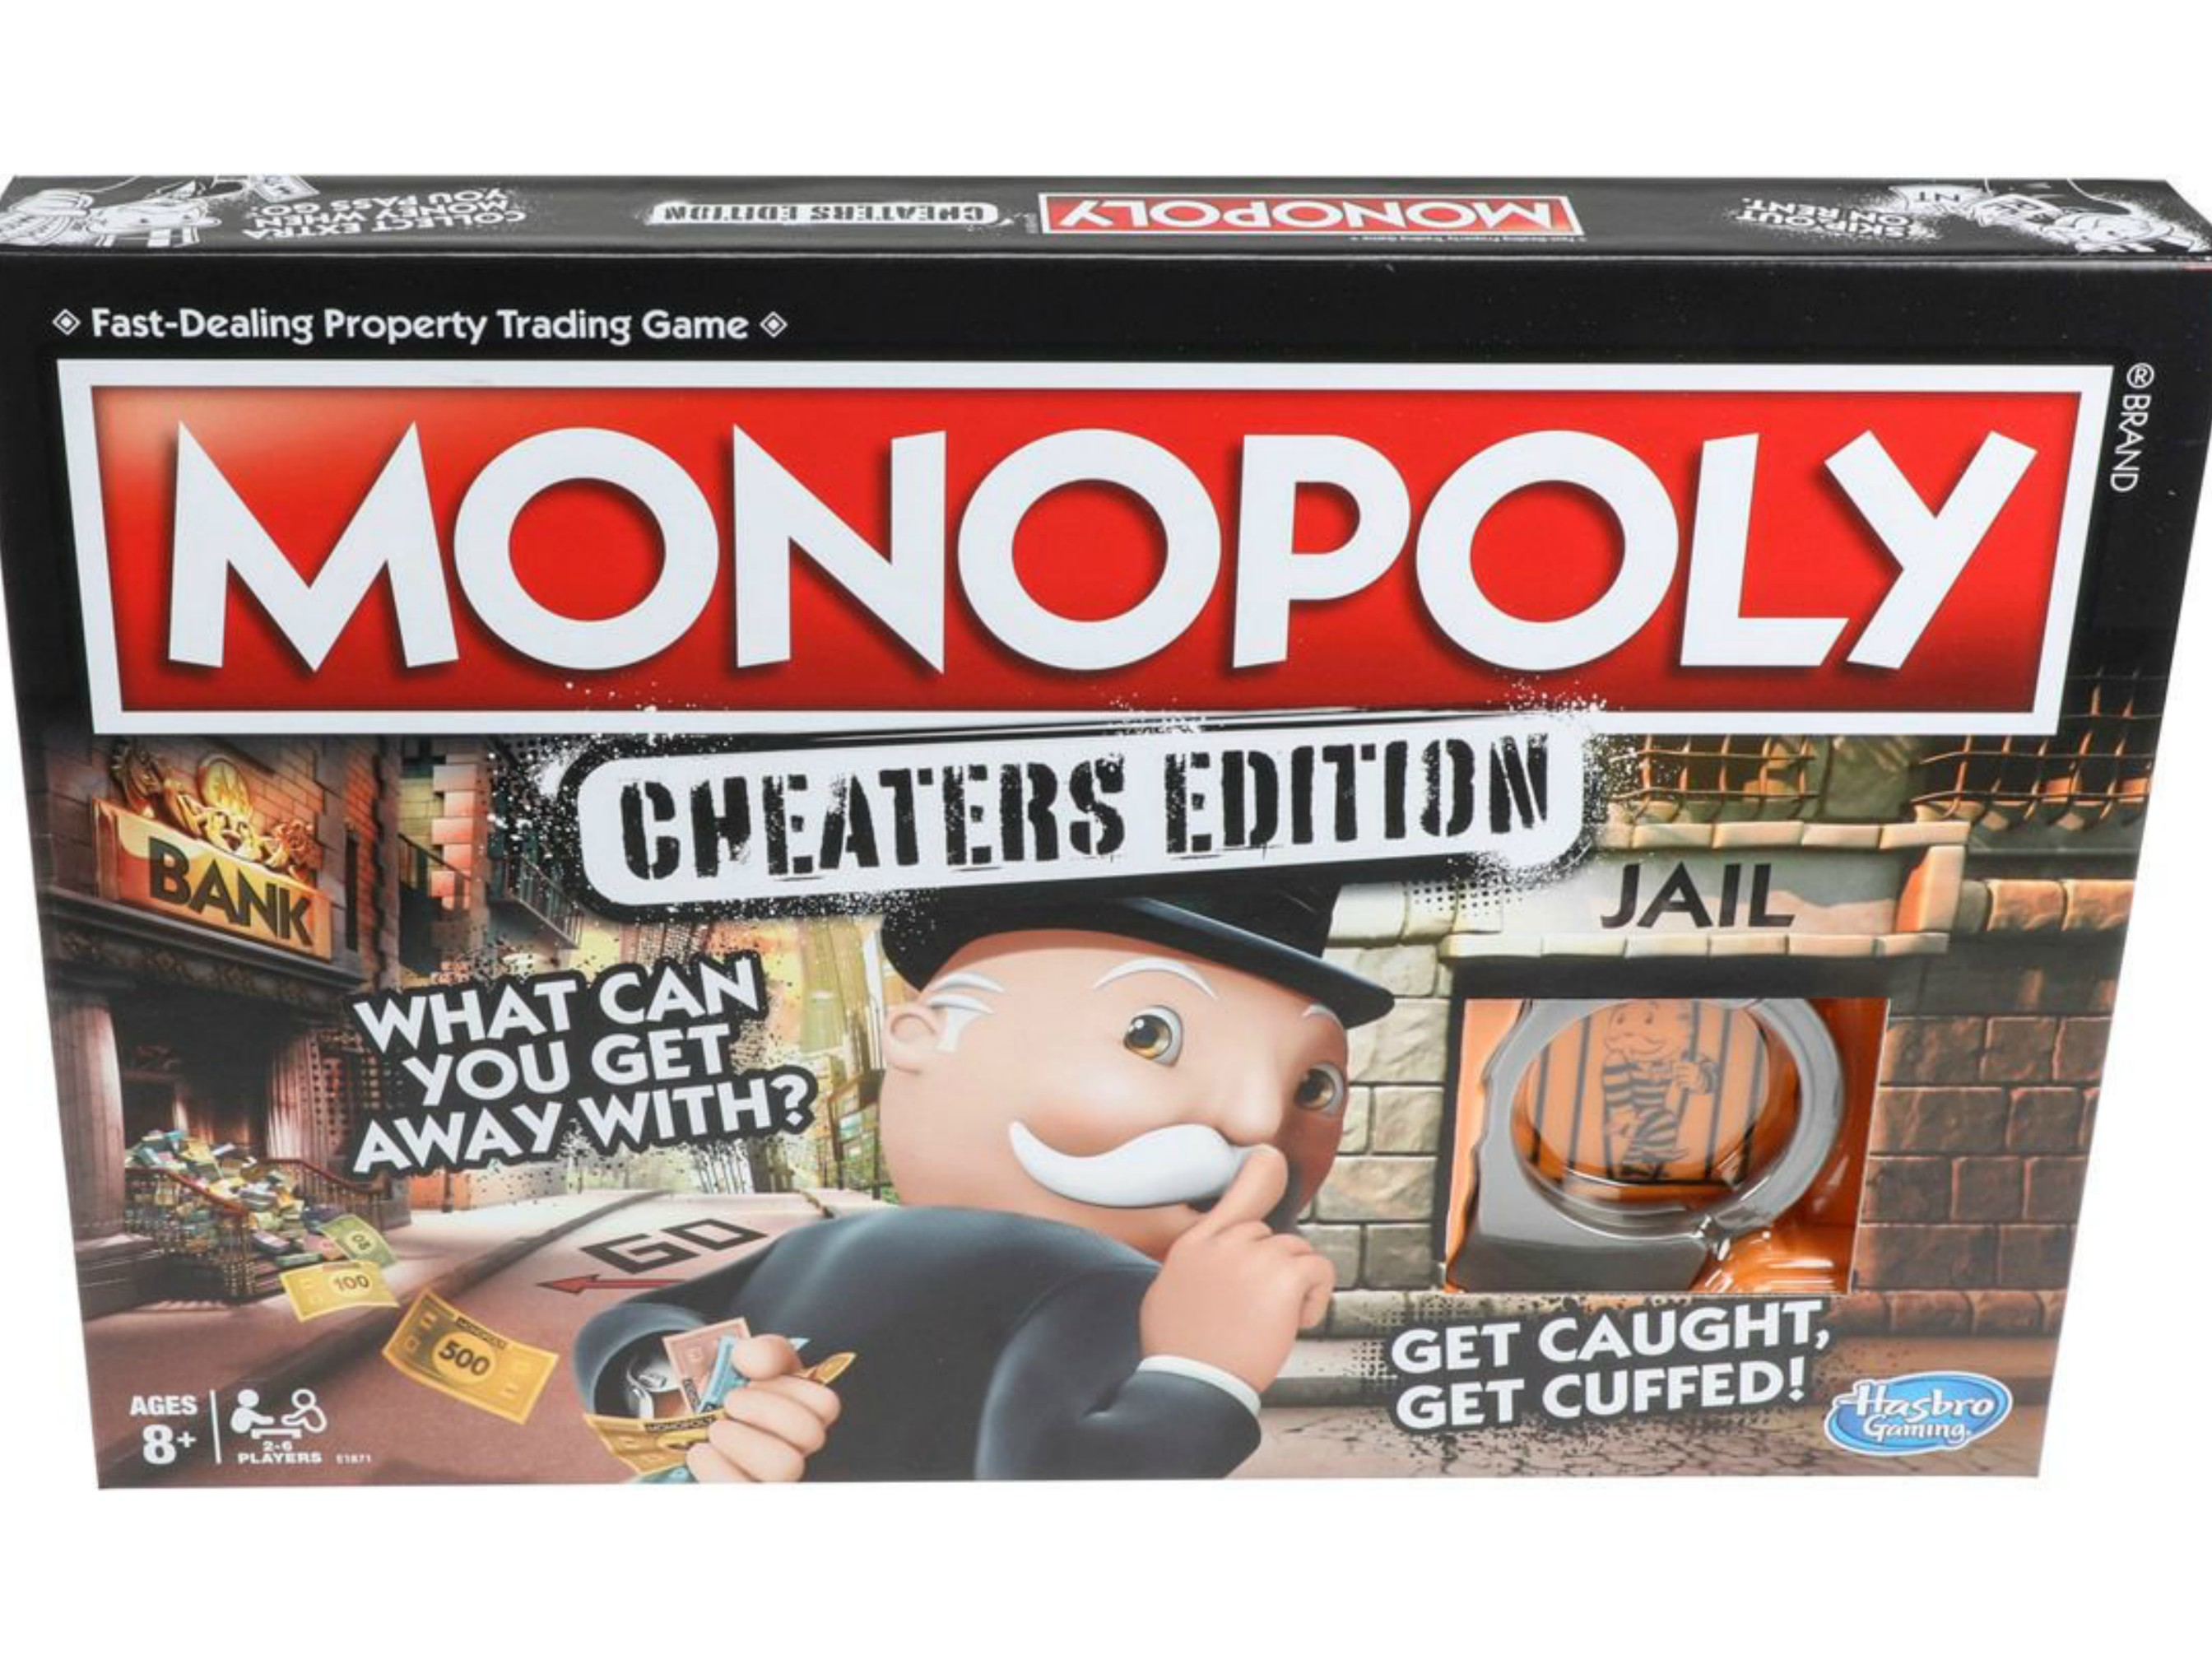 Cheating encouraged in new Monopoly version